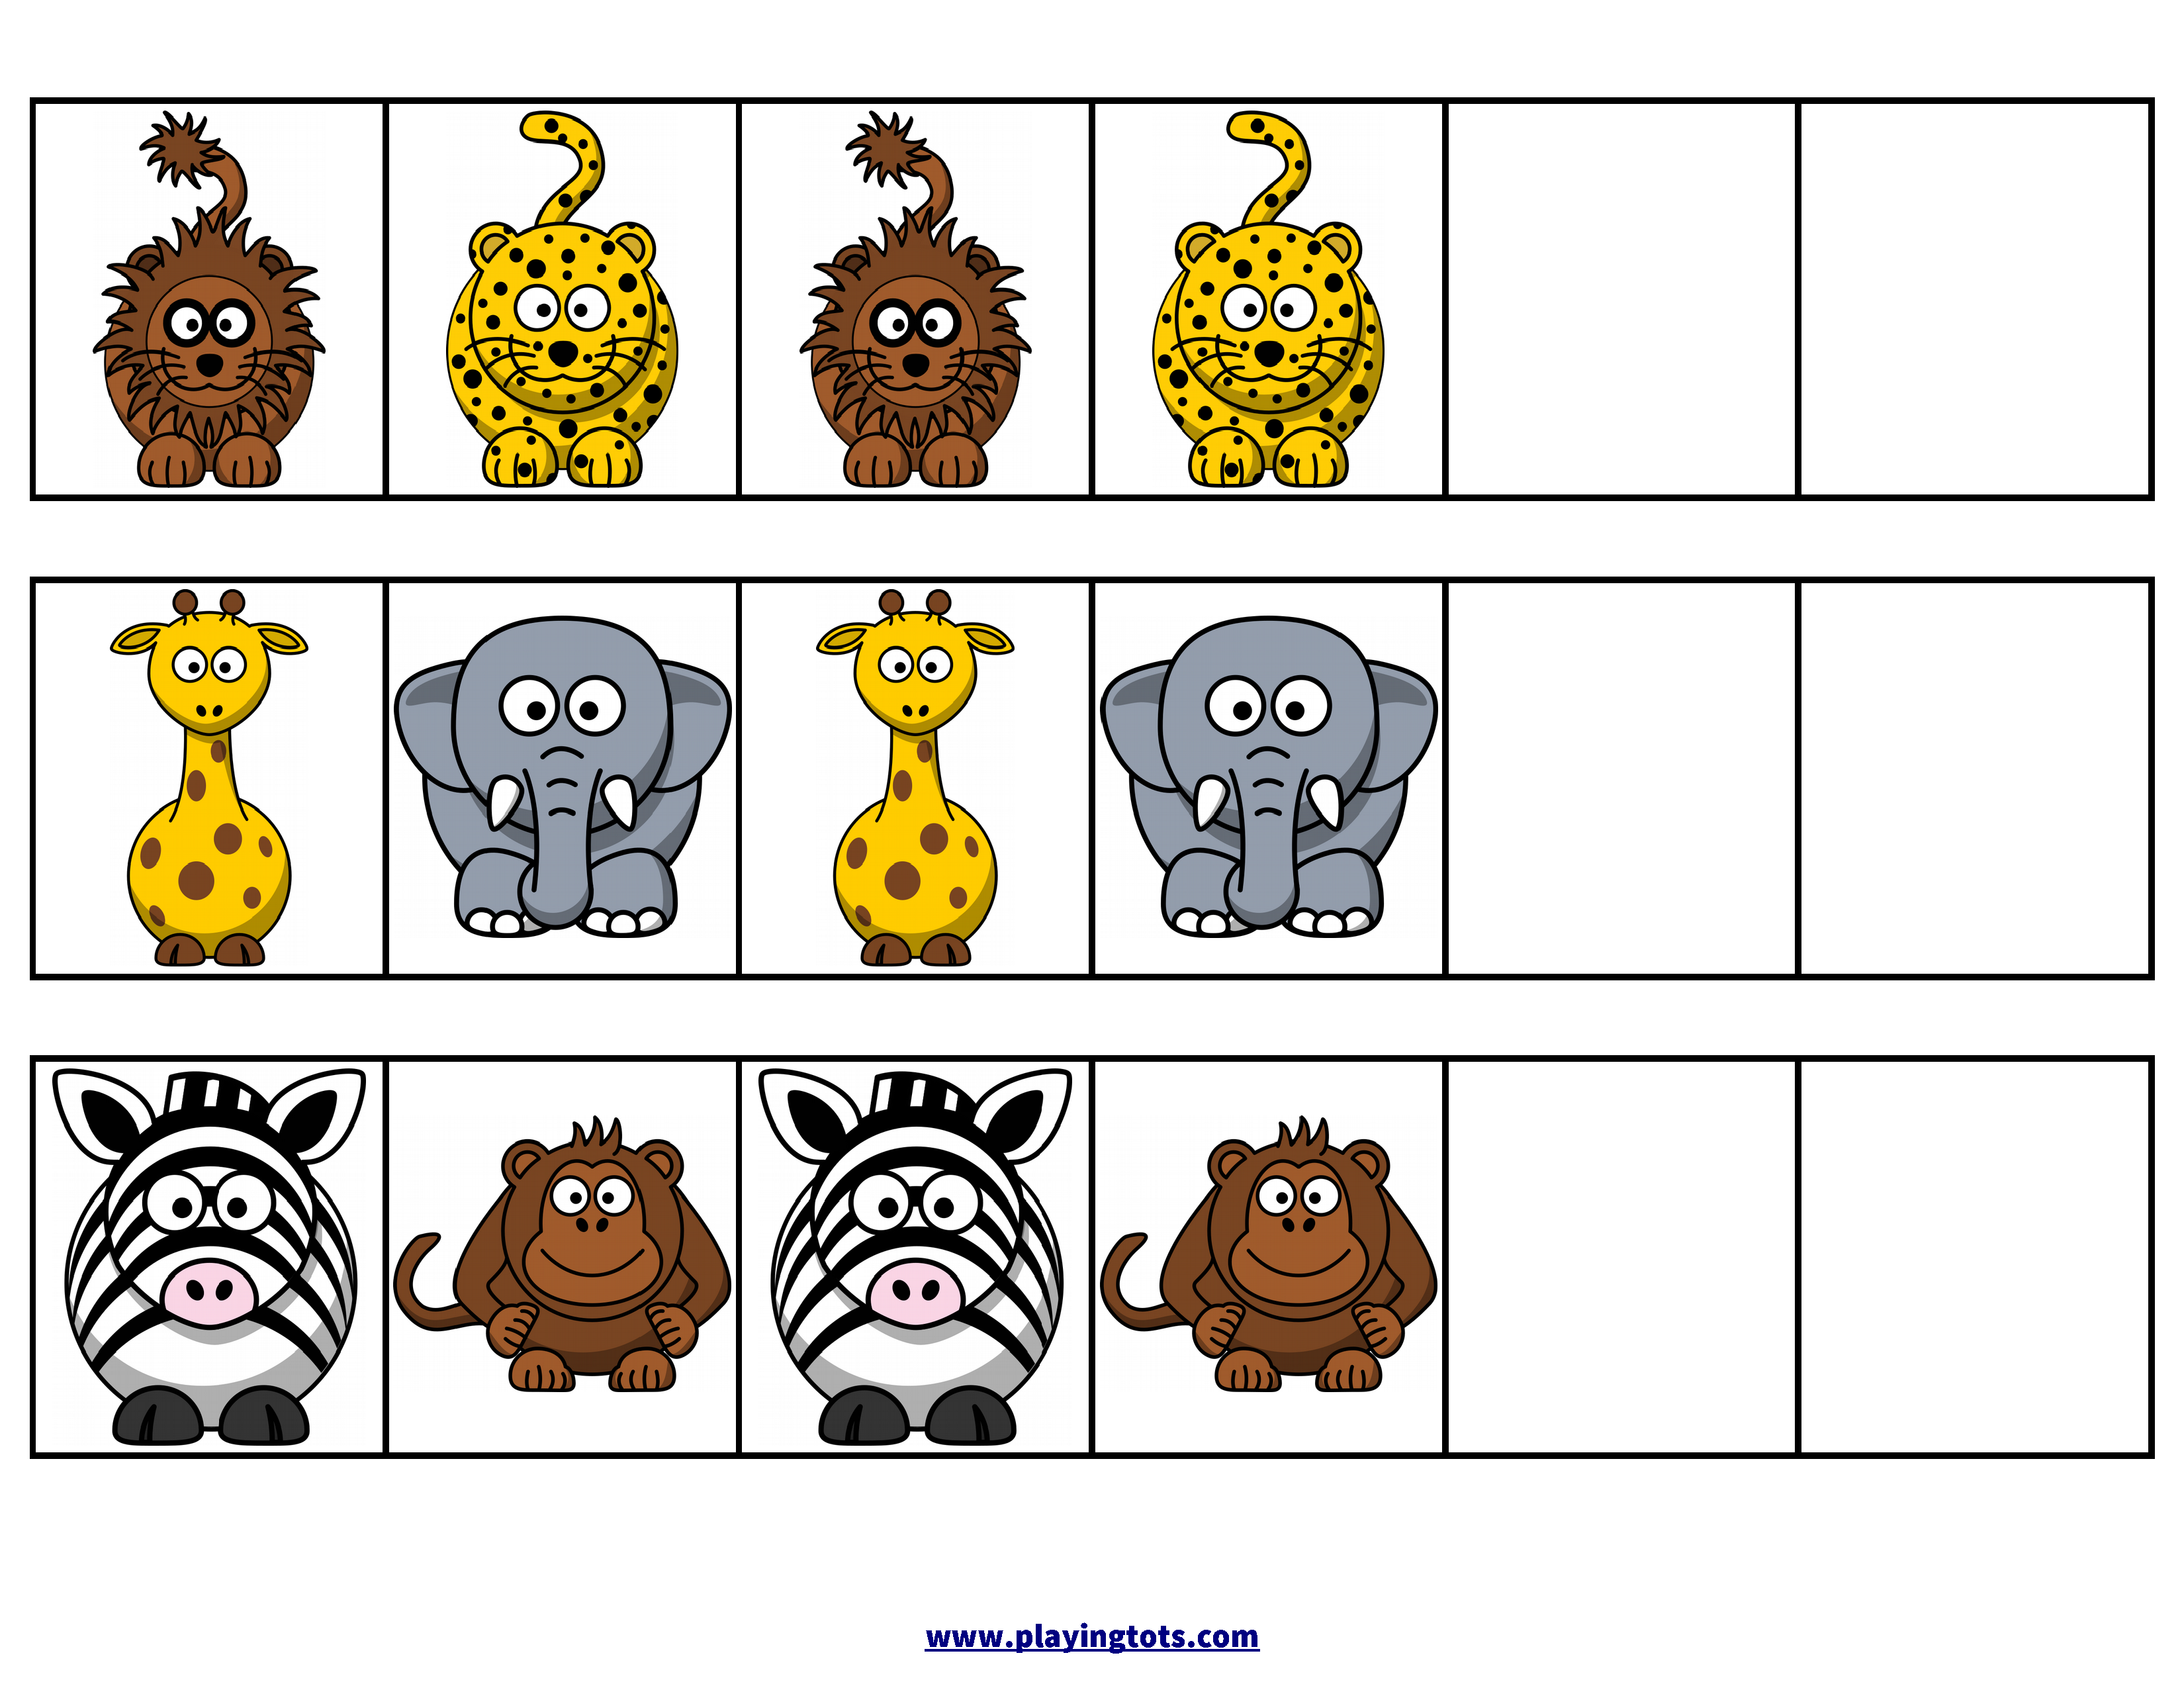 pattern animals zoo activity free printable file folder toddler preschool kids match zoo zoo. Black Bedroom Furniture Sets. Home Design Ideas